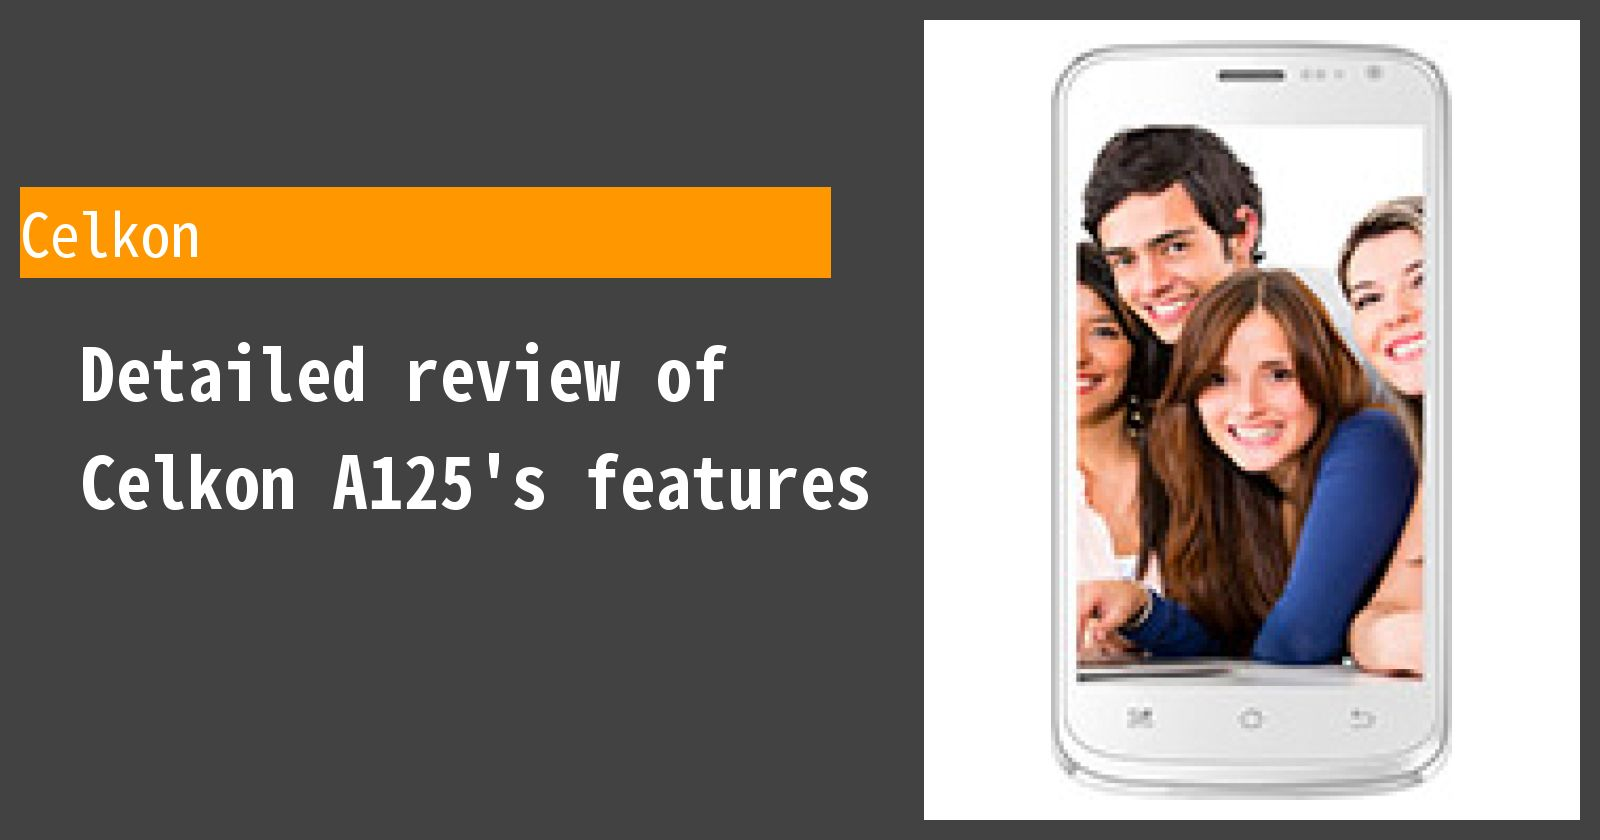 Detailed review of Celkon A125's features